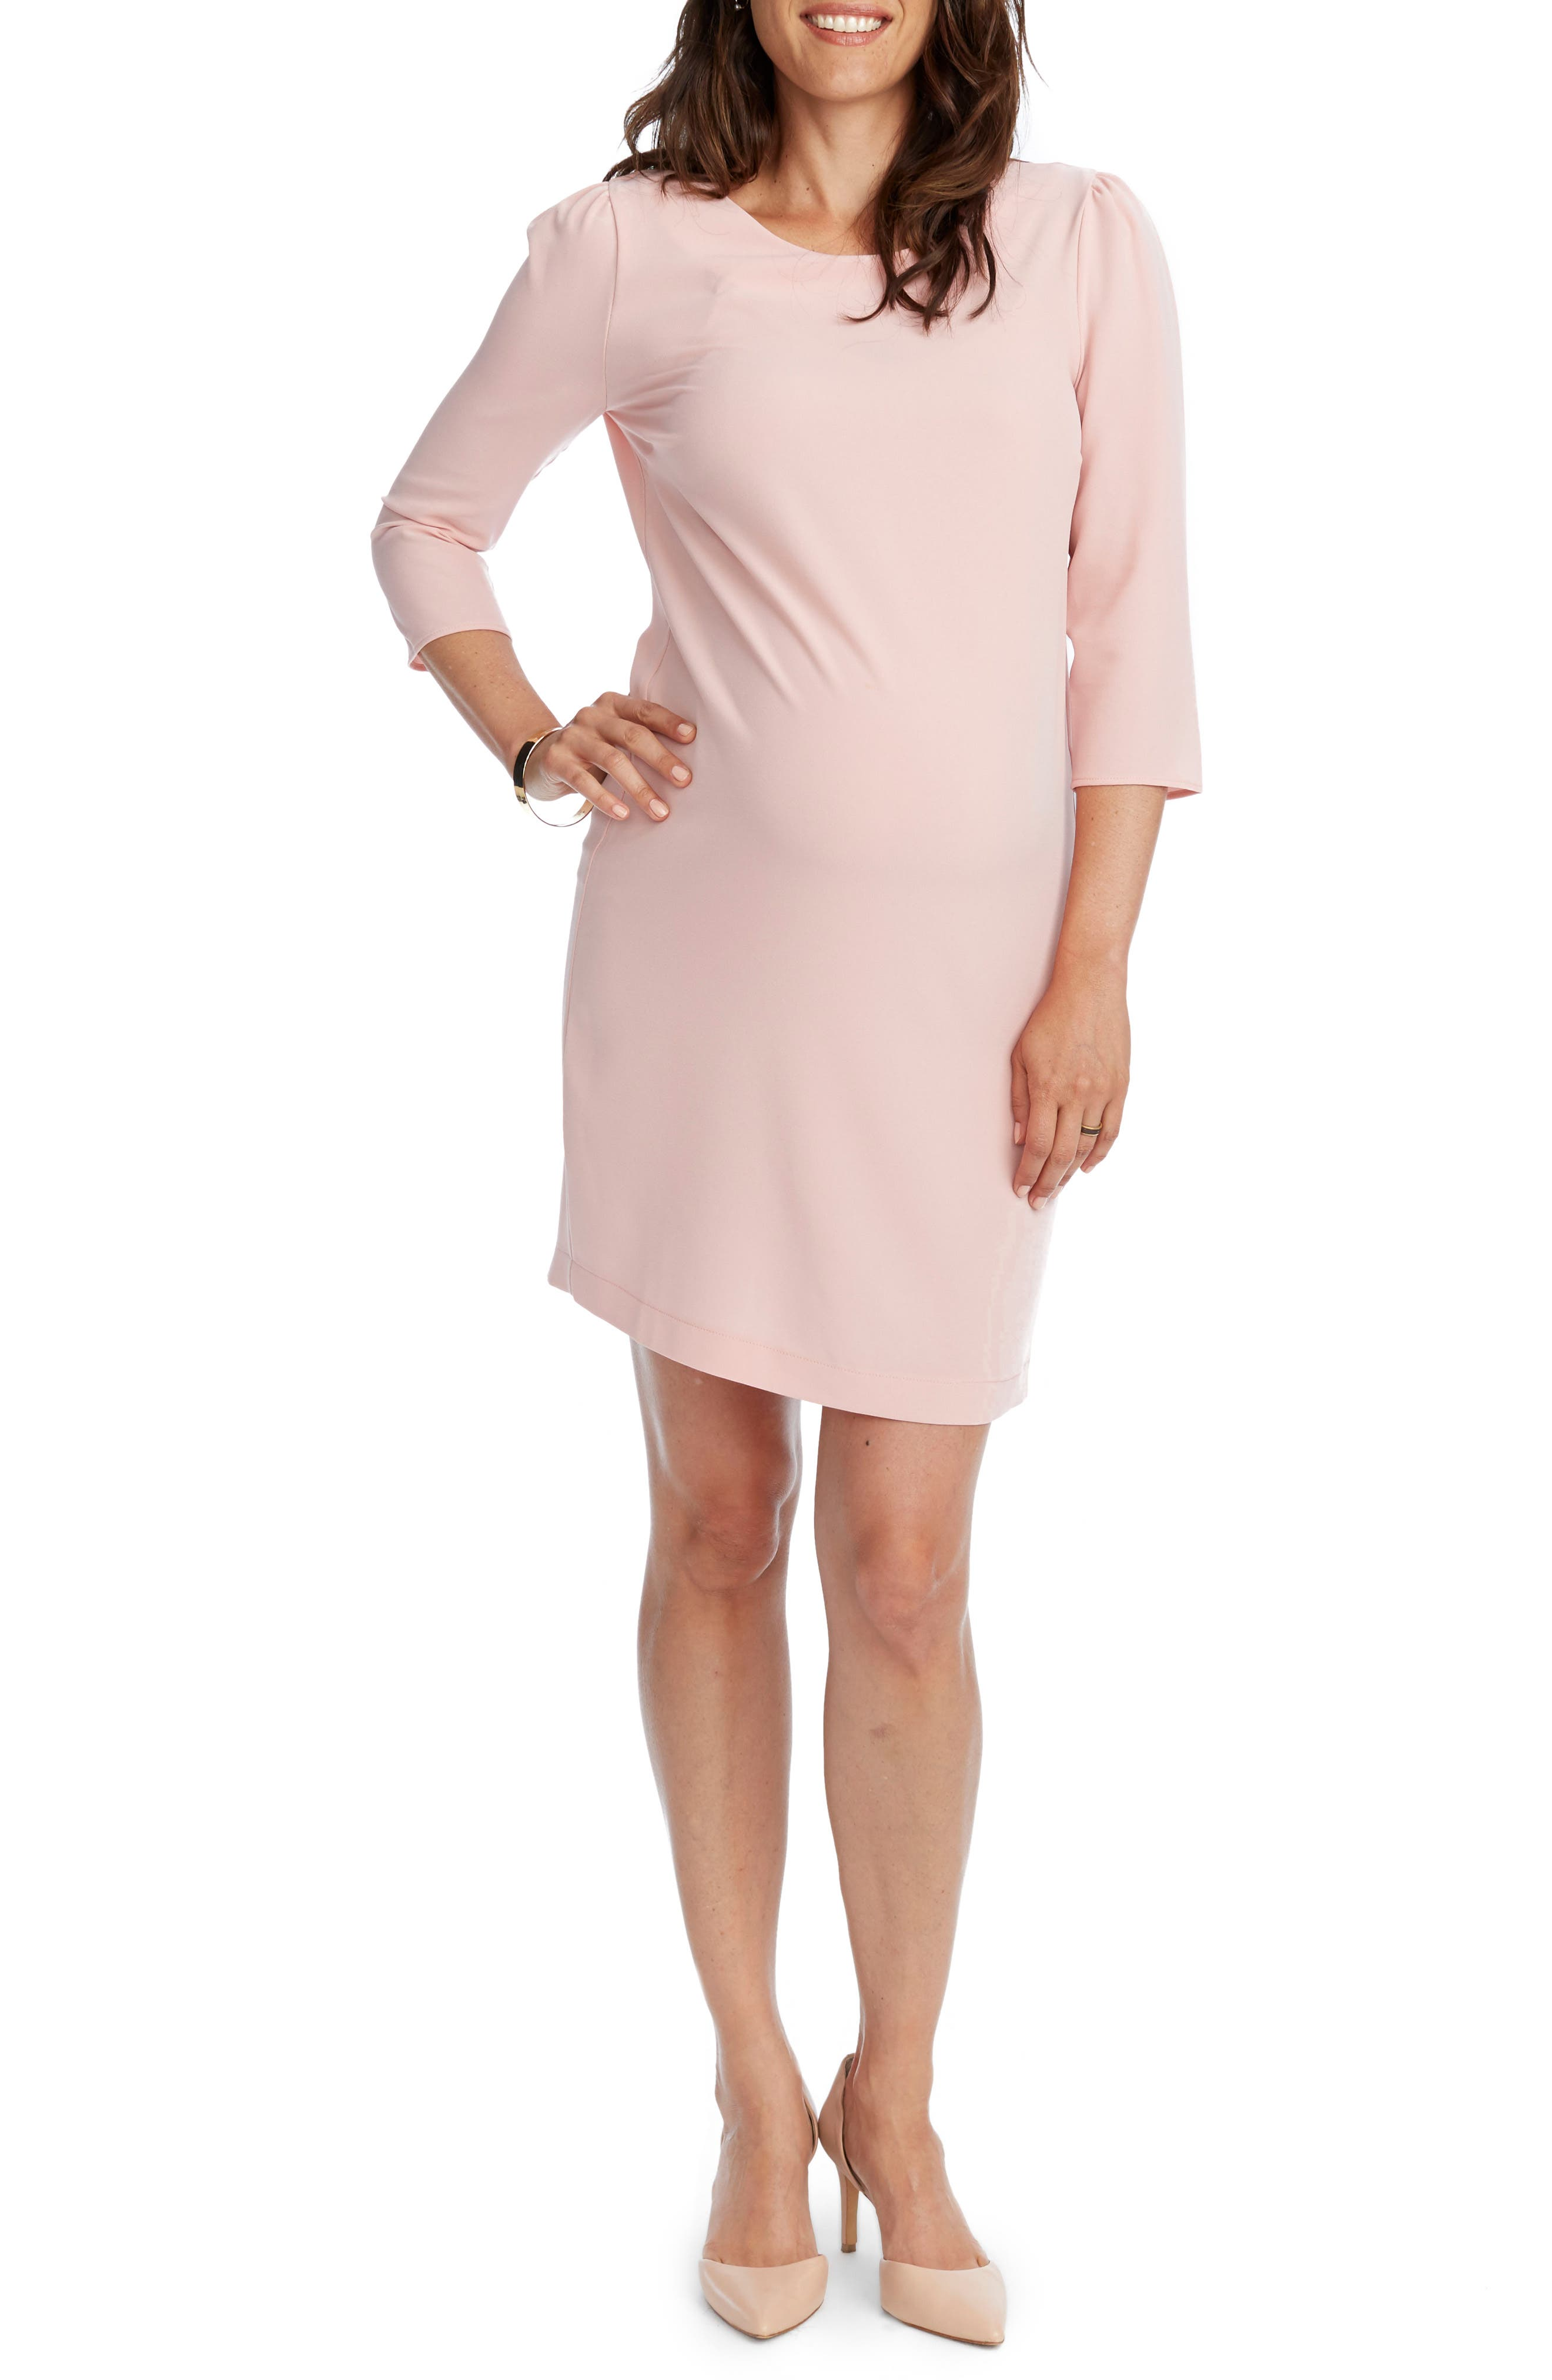 Rosie Pope Cammie Maternity Shift Dress